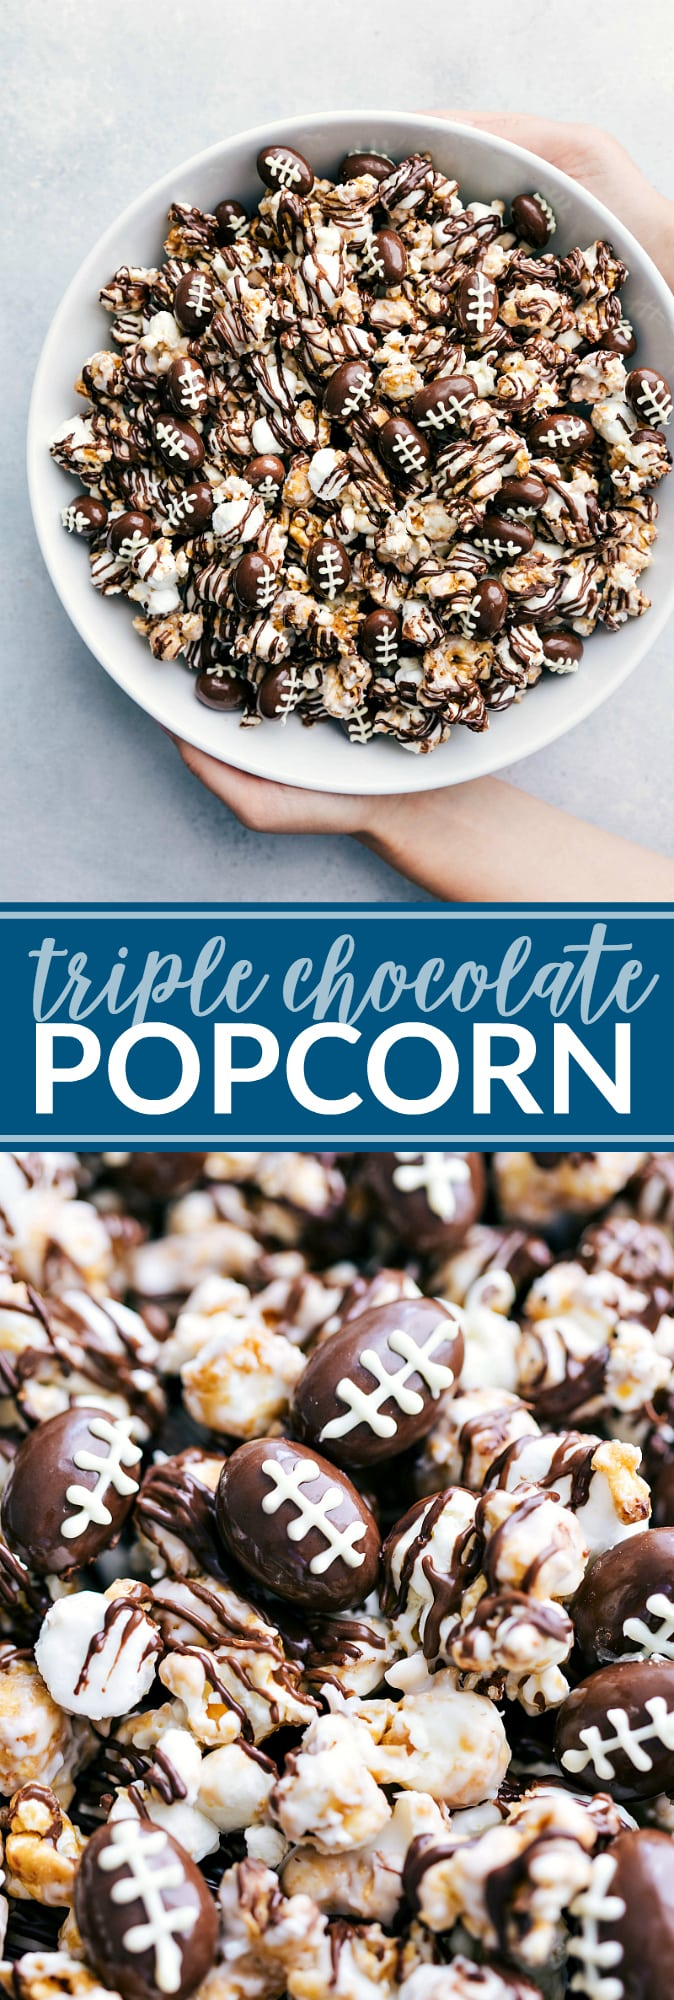 The ultimate BEST EVER triple chocolate popcorn with optional chocolate covered almond footballs! This recipe is from a famous Cleveland bakery and everyone always BEGS for thie recipe! Video tutorial and step by step directions! via chelseasmessyapron.com #dessert #triple #chocolate #popcorn #easy #quick #treat #football #tailgaiting #party #potluck #kidfriendly #chocolate #dark #white #milk #sugar